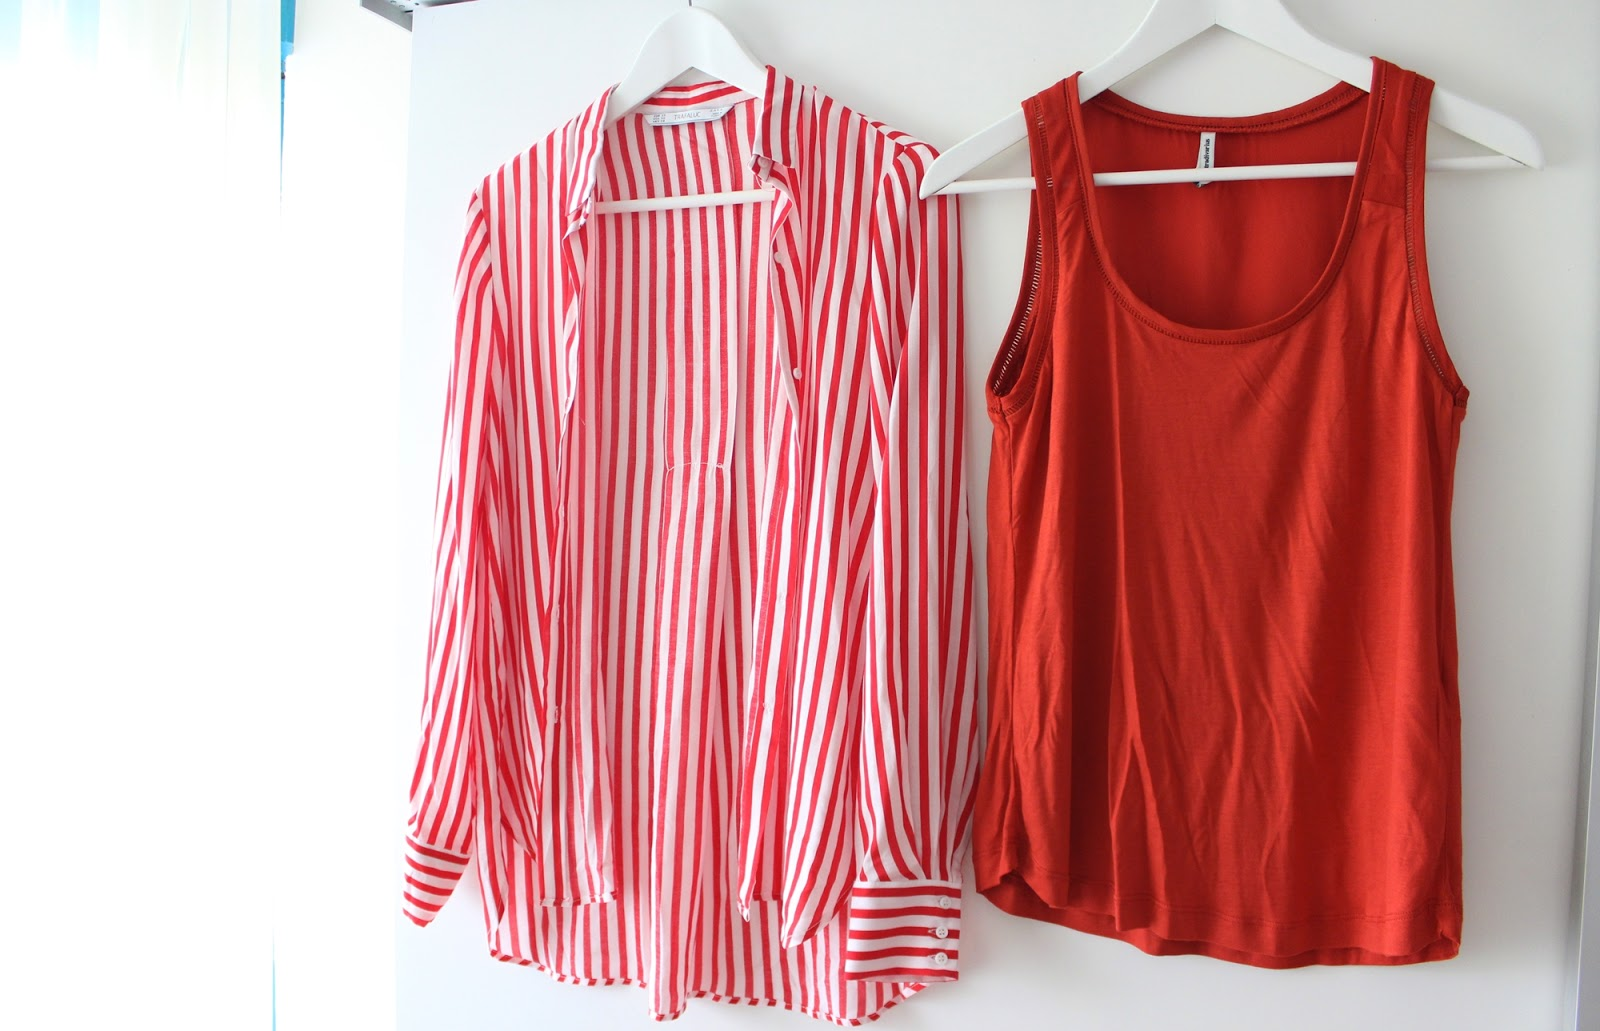 Barcelona shopping haul zara stradivarius stripes blouse shirt